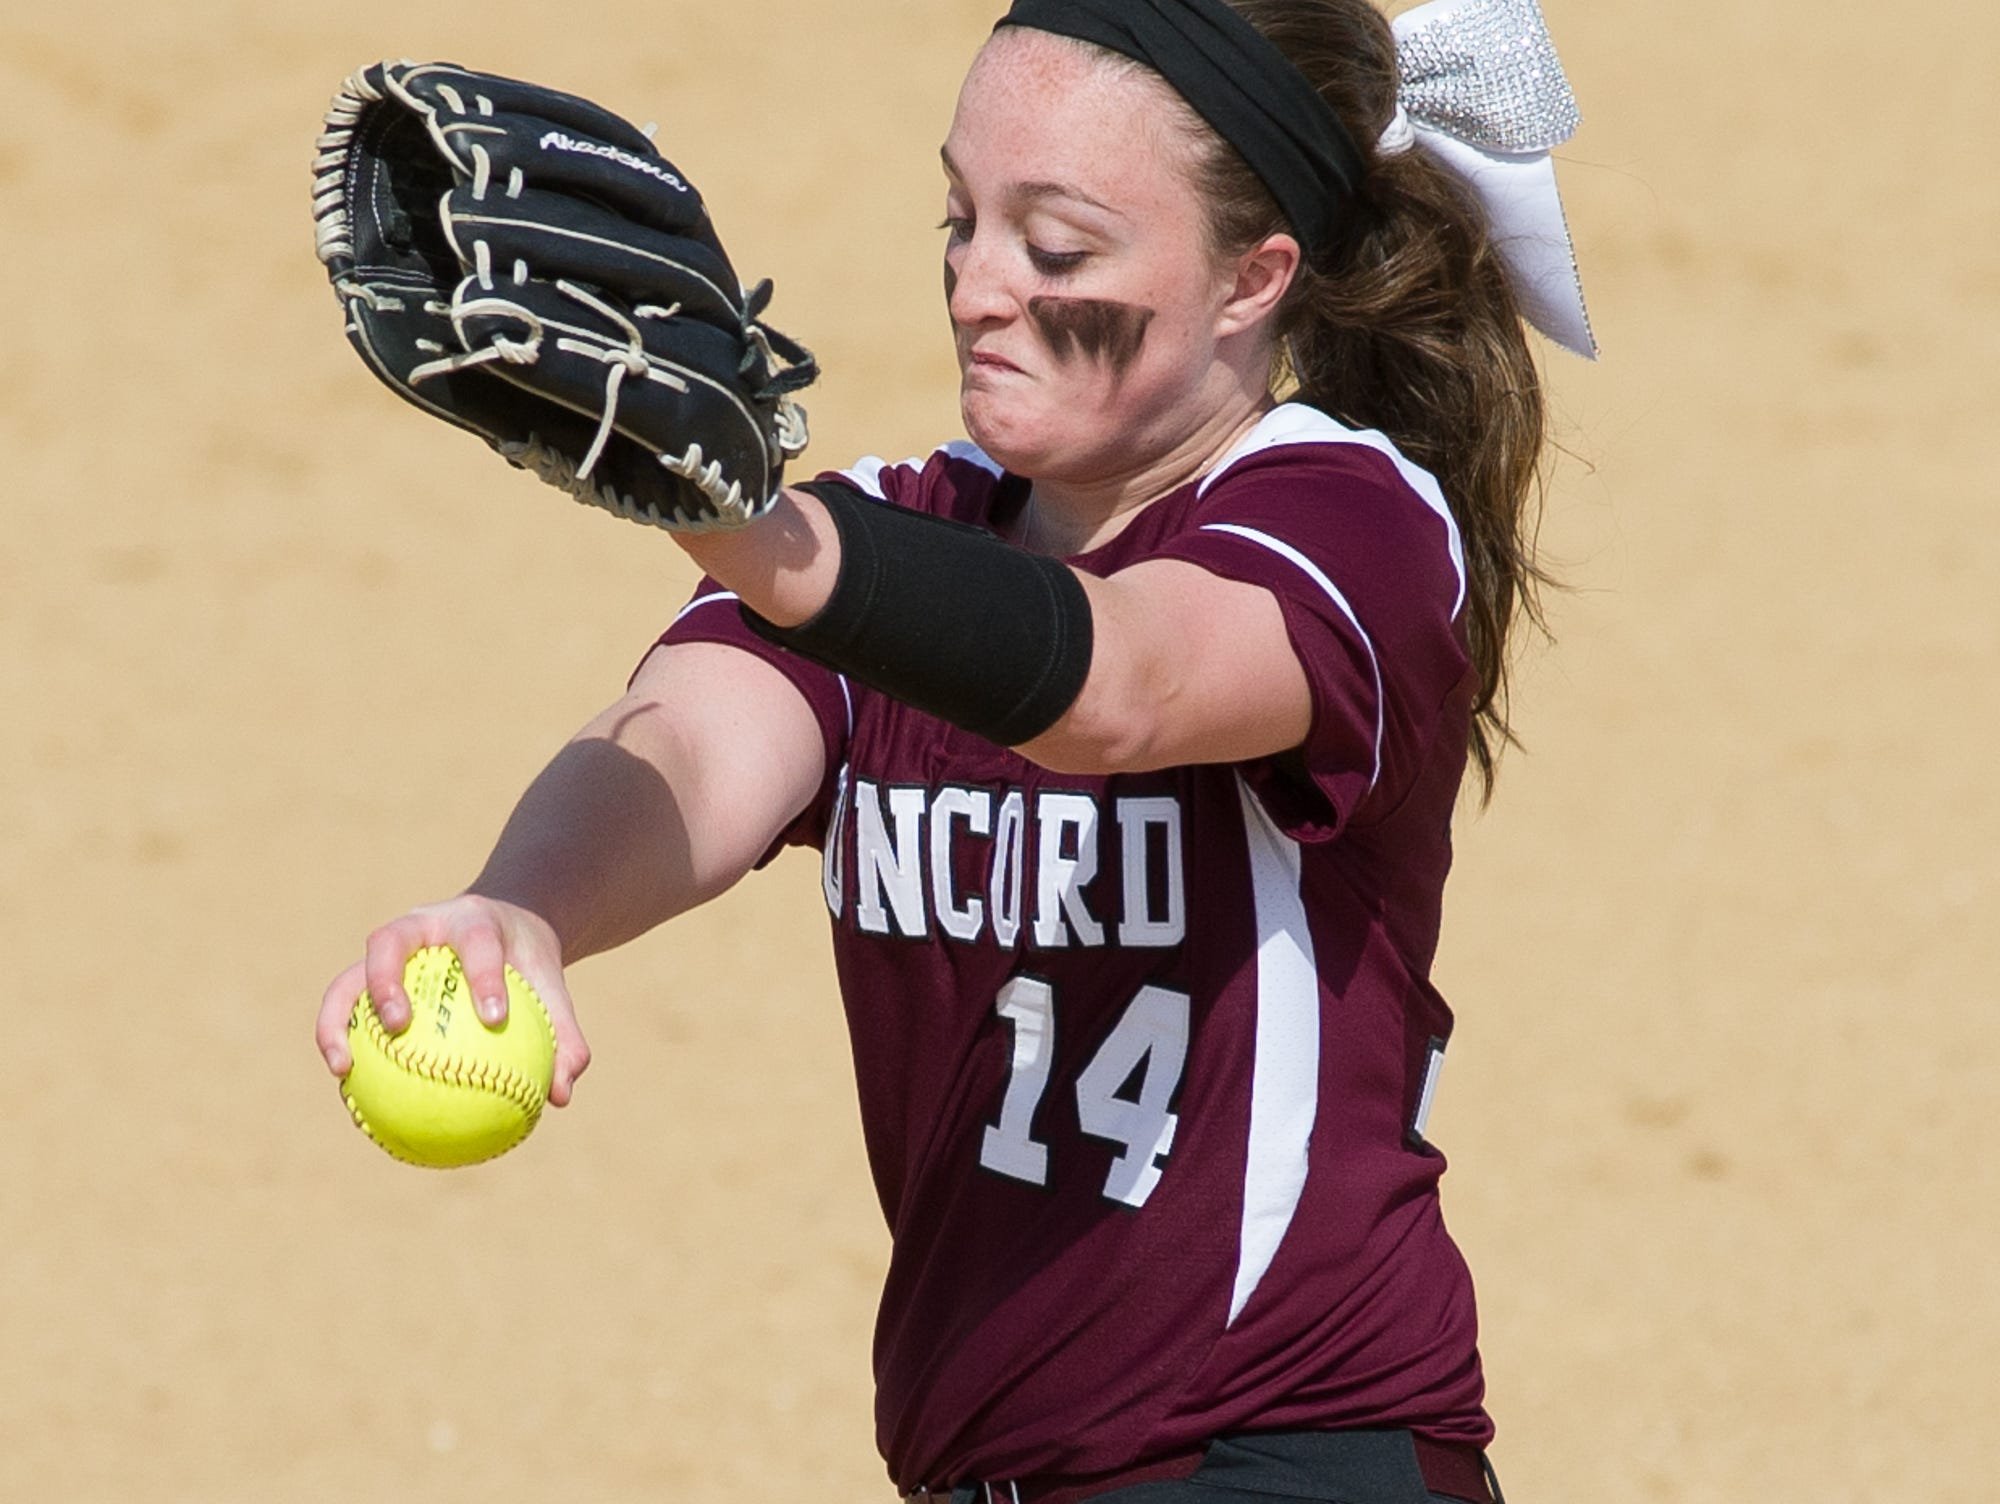 Concord's pitcher Rachel Pritchard (14) in their game against Caesar Rodney.